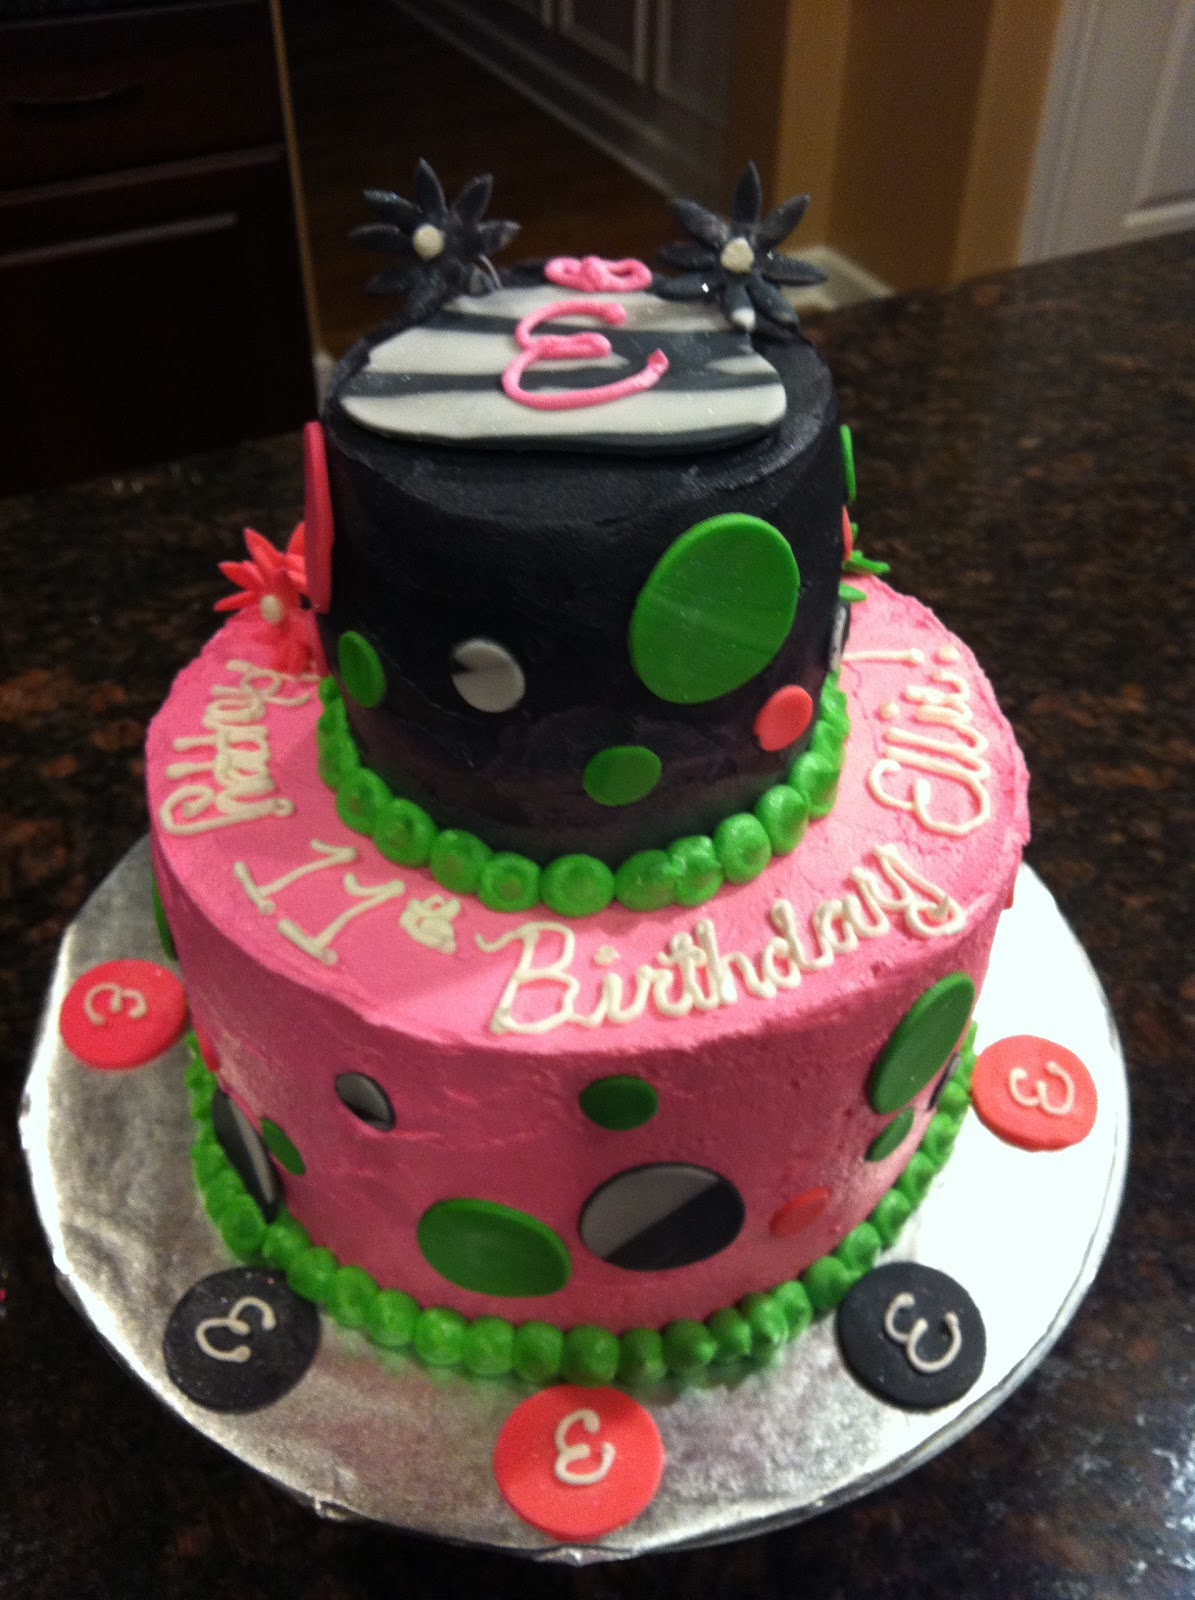 7 Year Old Birthday Cakes http://jlovestobake.blogspot.com/2011/11/birthday-cake-11-year-old-girl.html